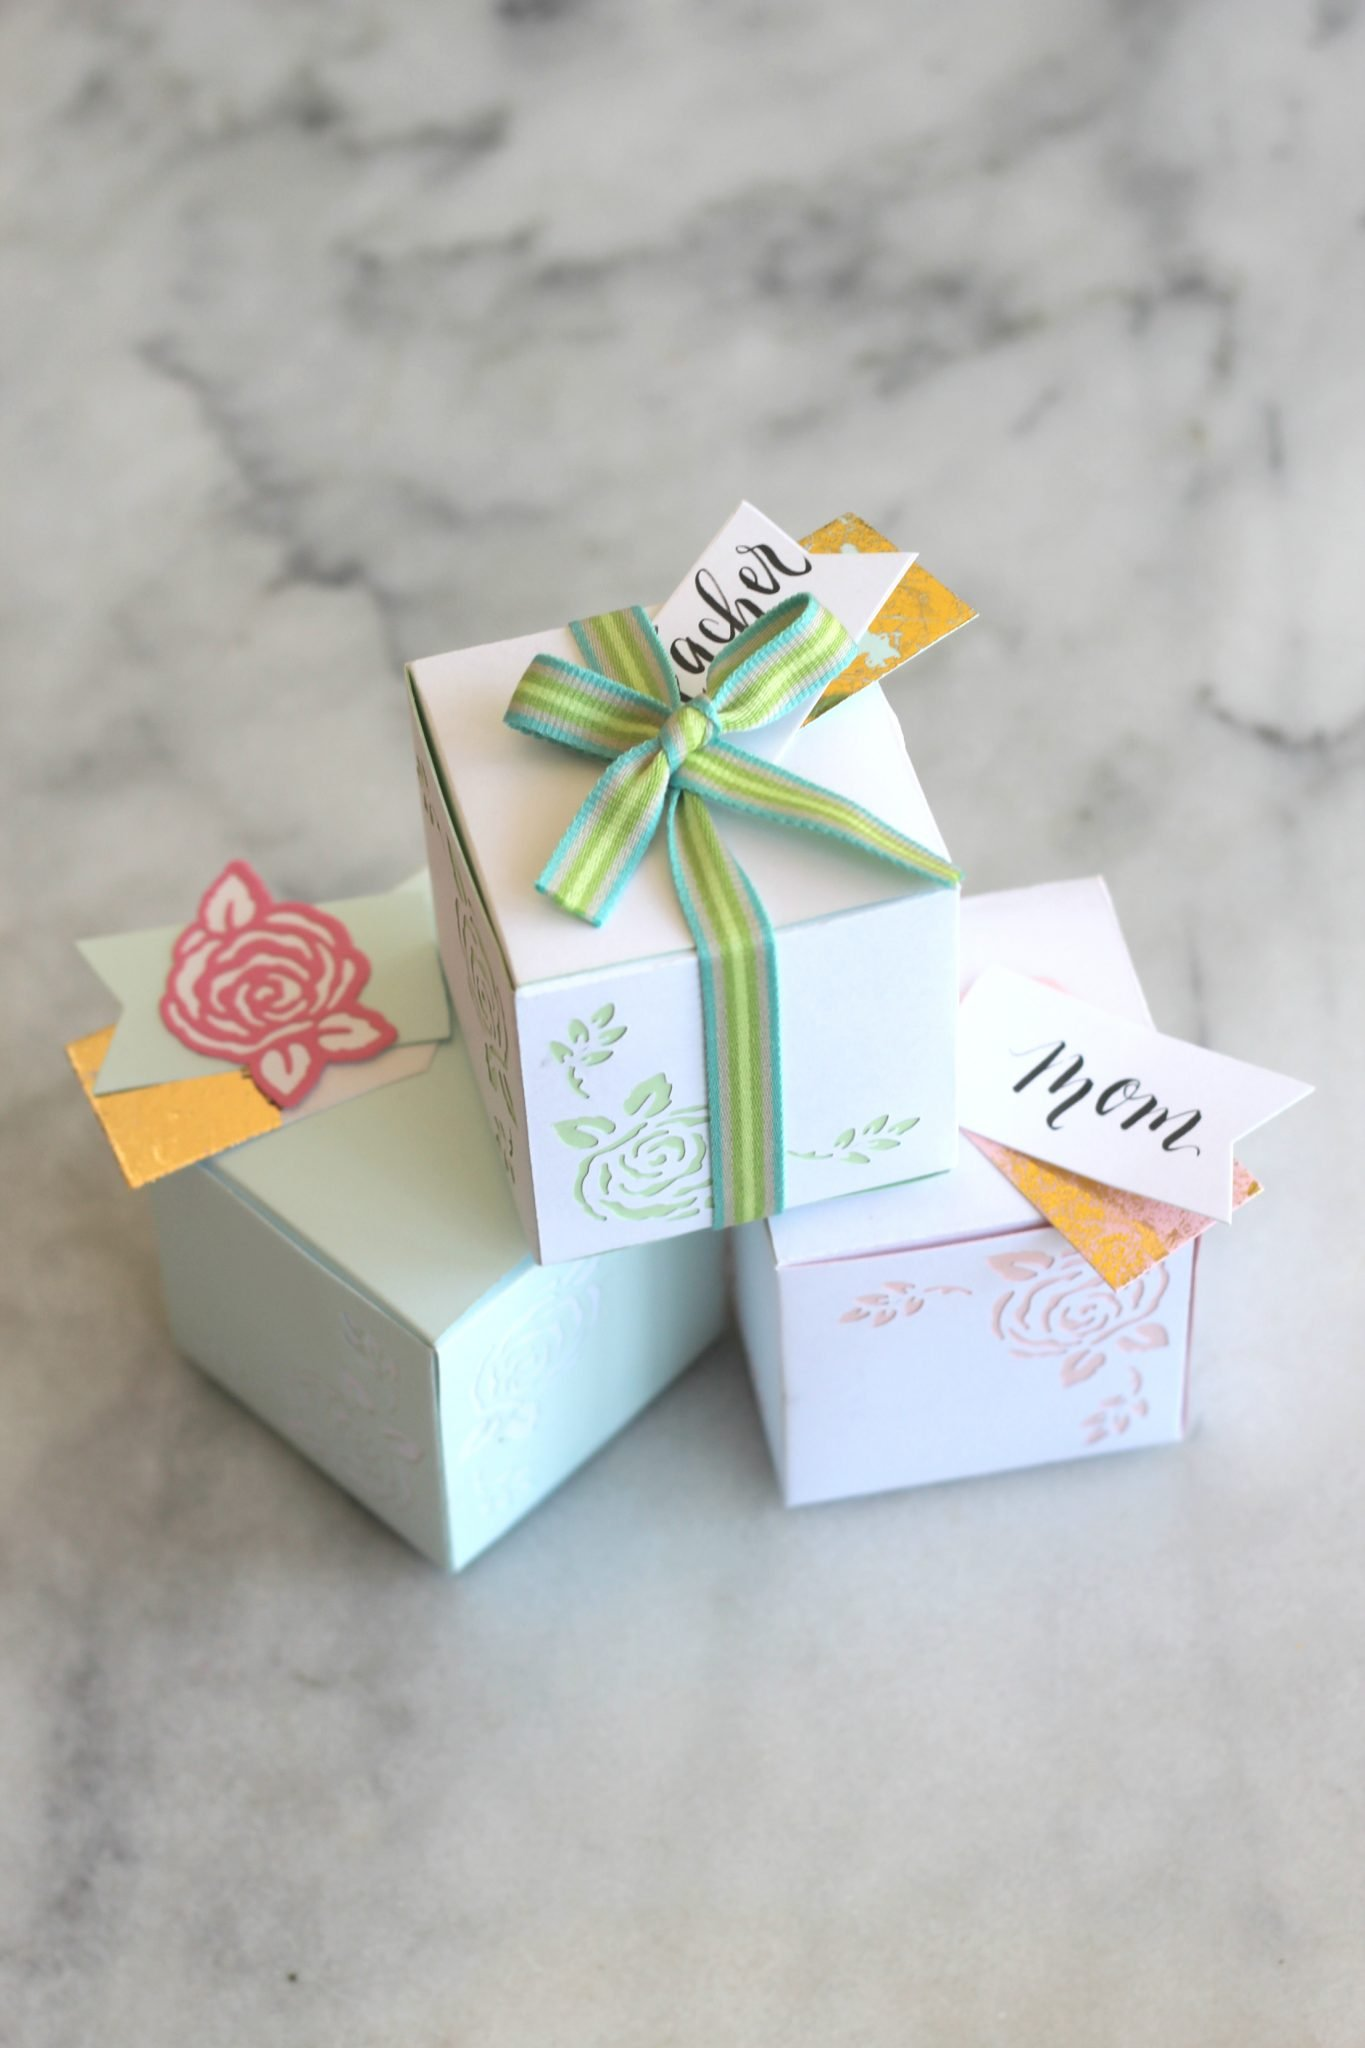 springtime flower paper gift boxes   sparkle living blog